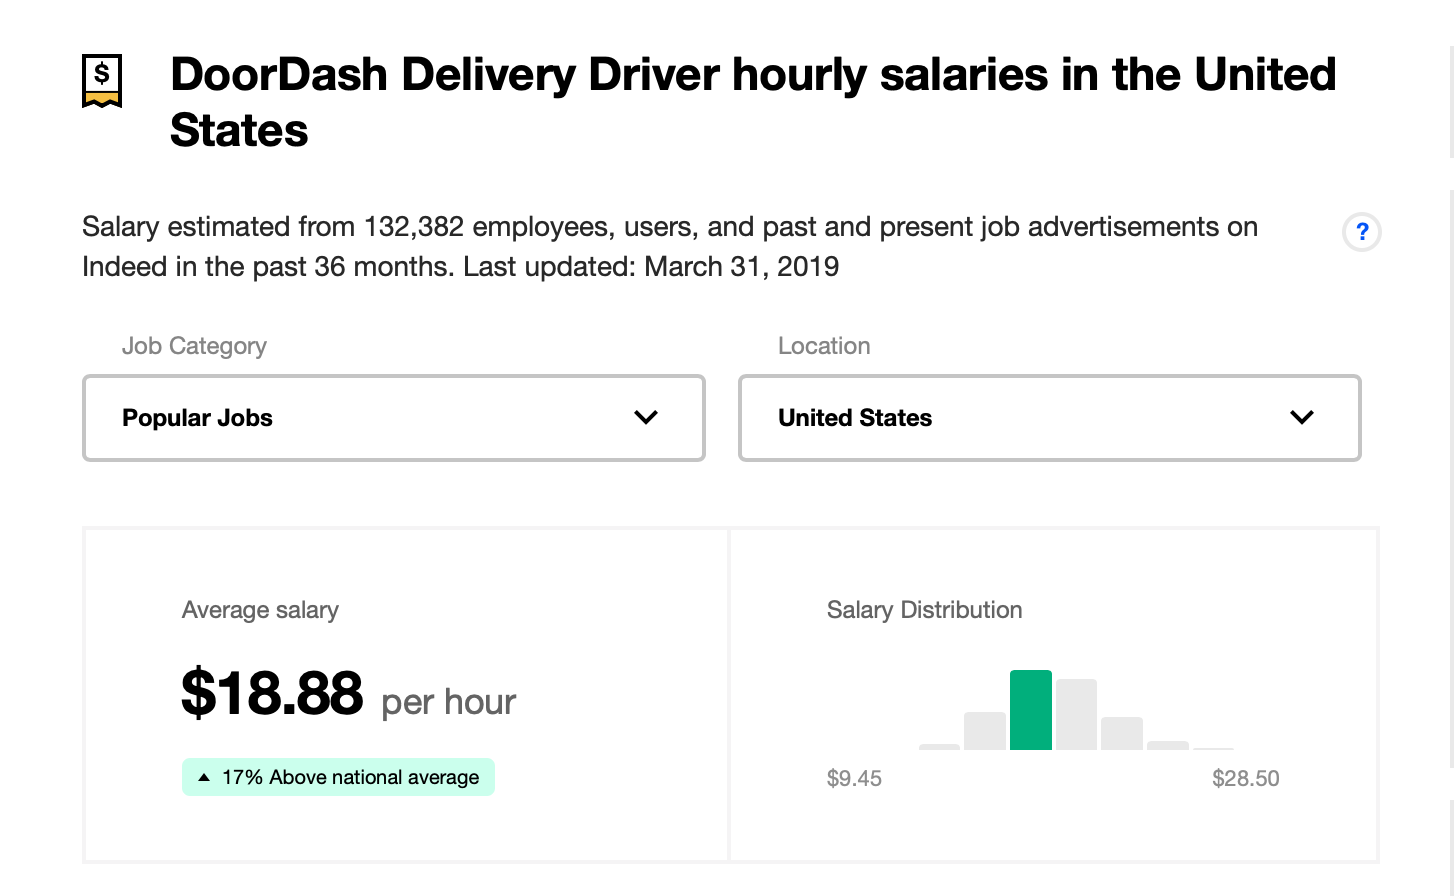 doordash delivery driver hourly salary